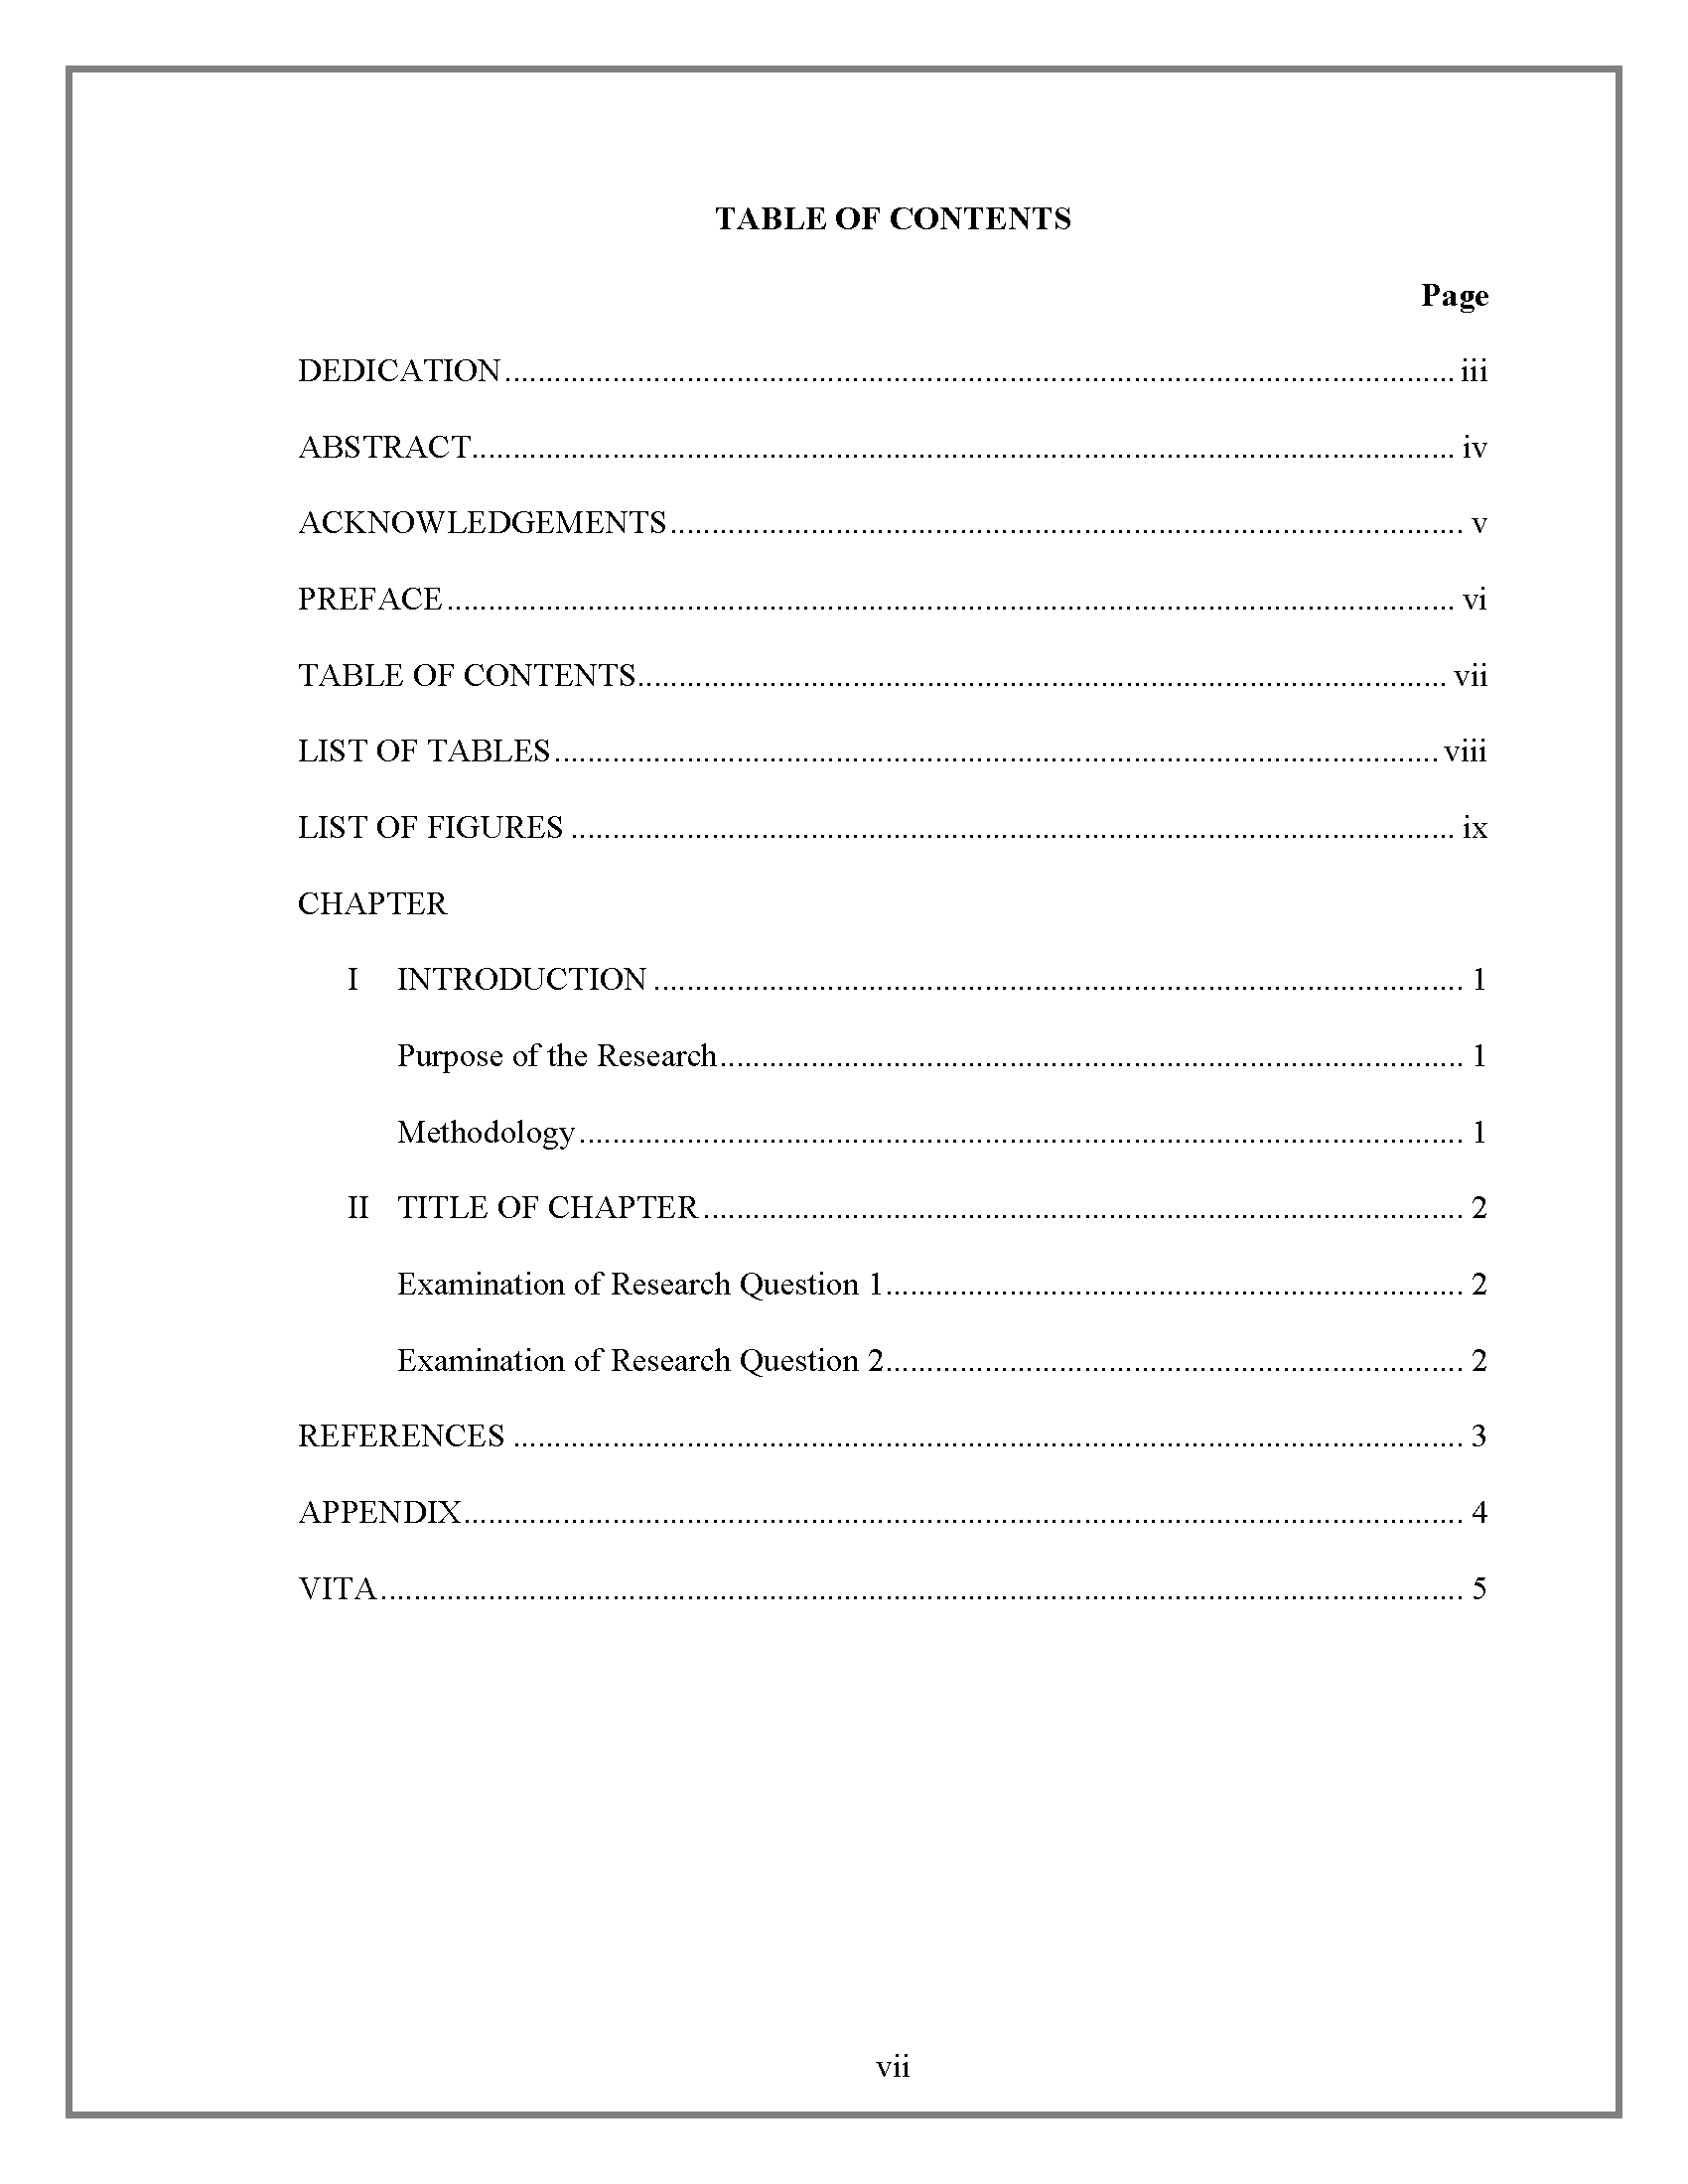 010 Apa Style Research Paper Example With Table Of Contents Contentsborder Stunning Full